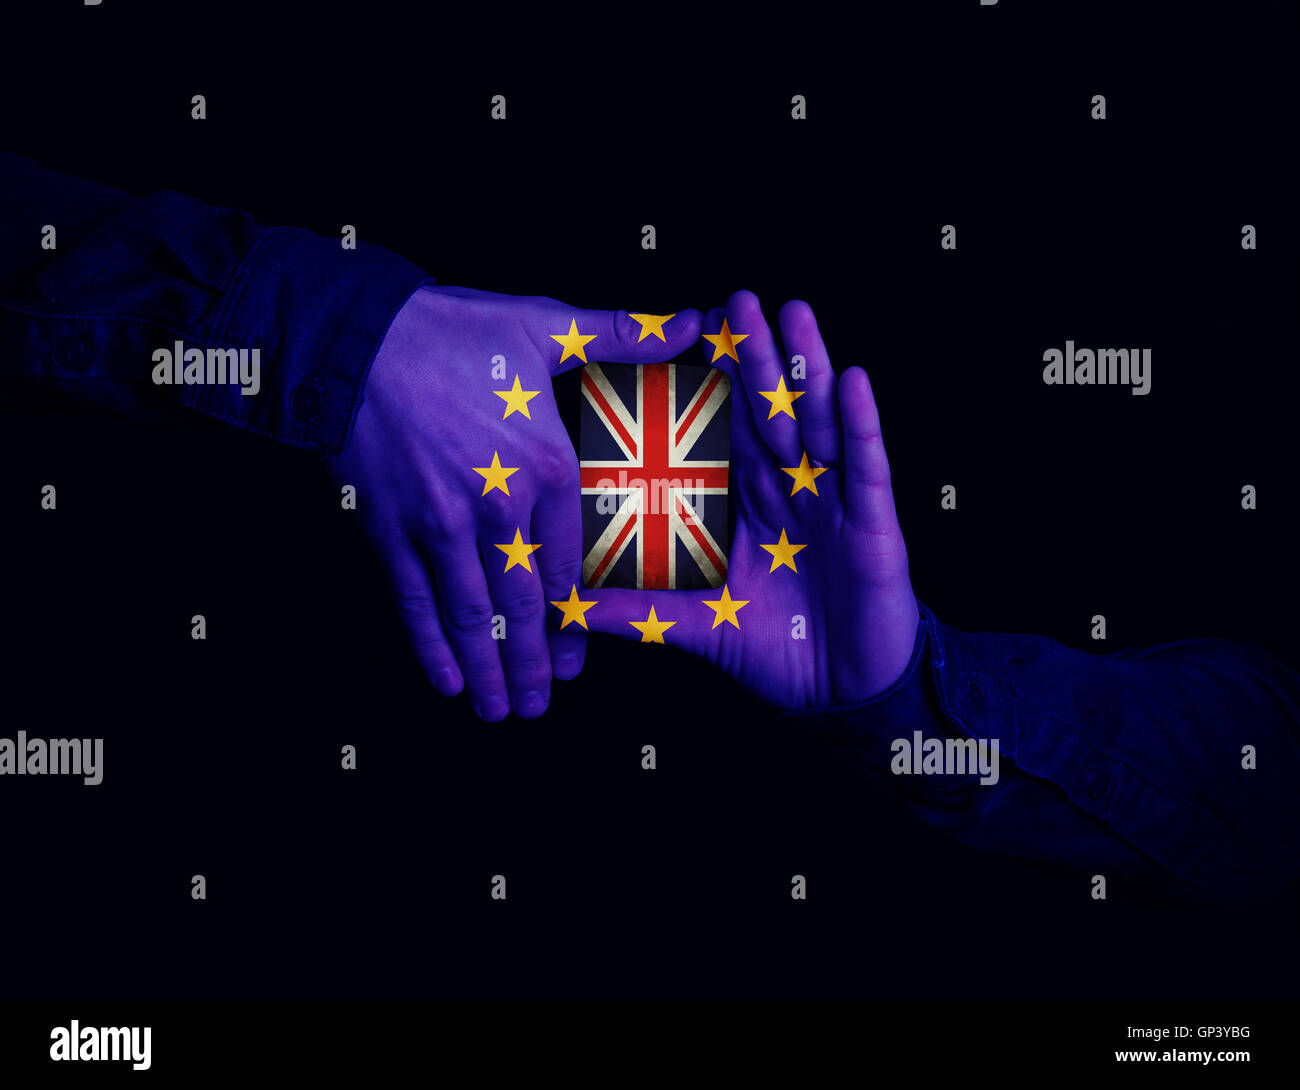 Close up of hands patterned with the flag of the European Community holding a card with the flag of the United Kingdom. - Stock Image